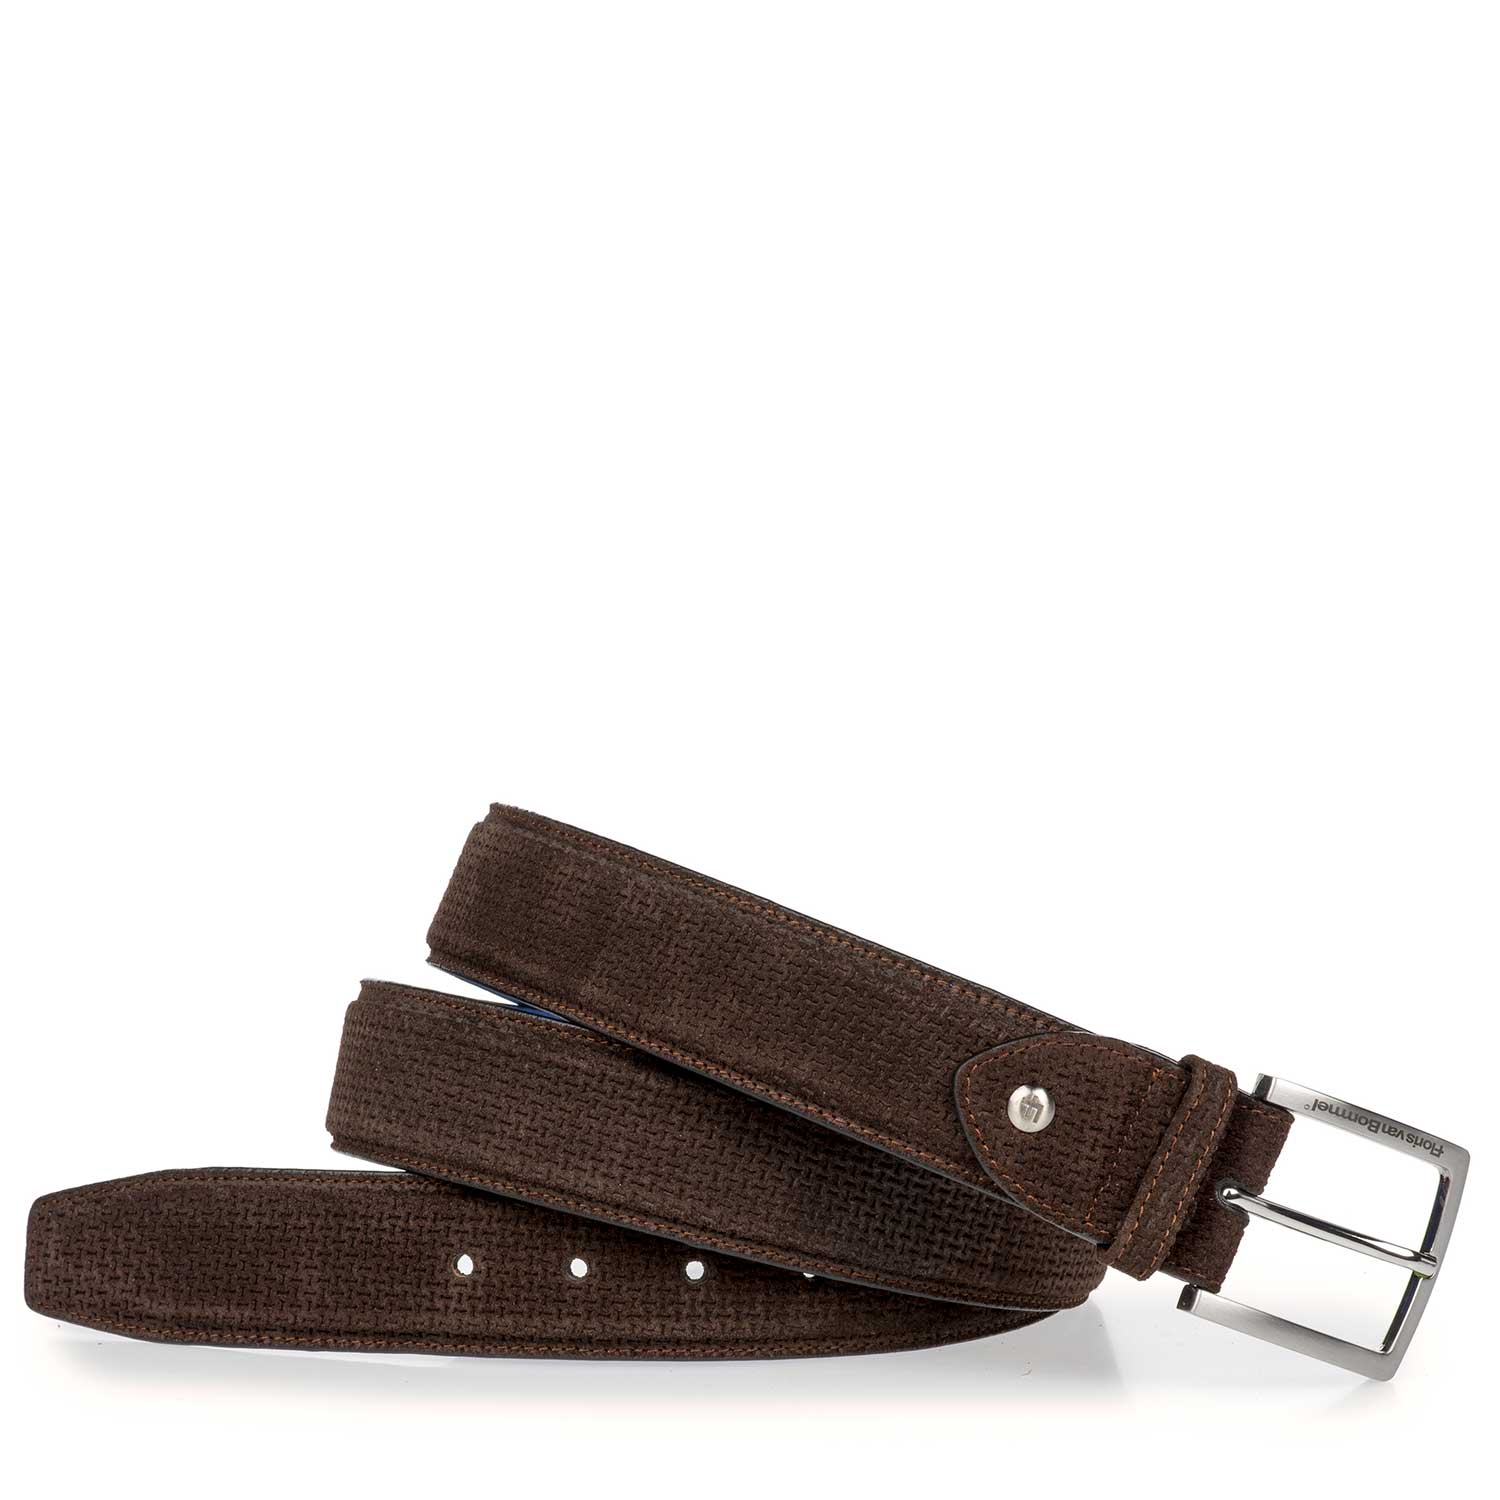 75189/19 - Dark brown belt with structural pattern